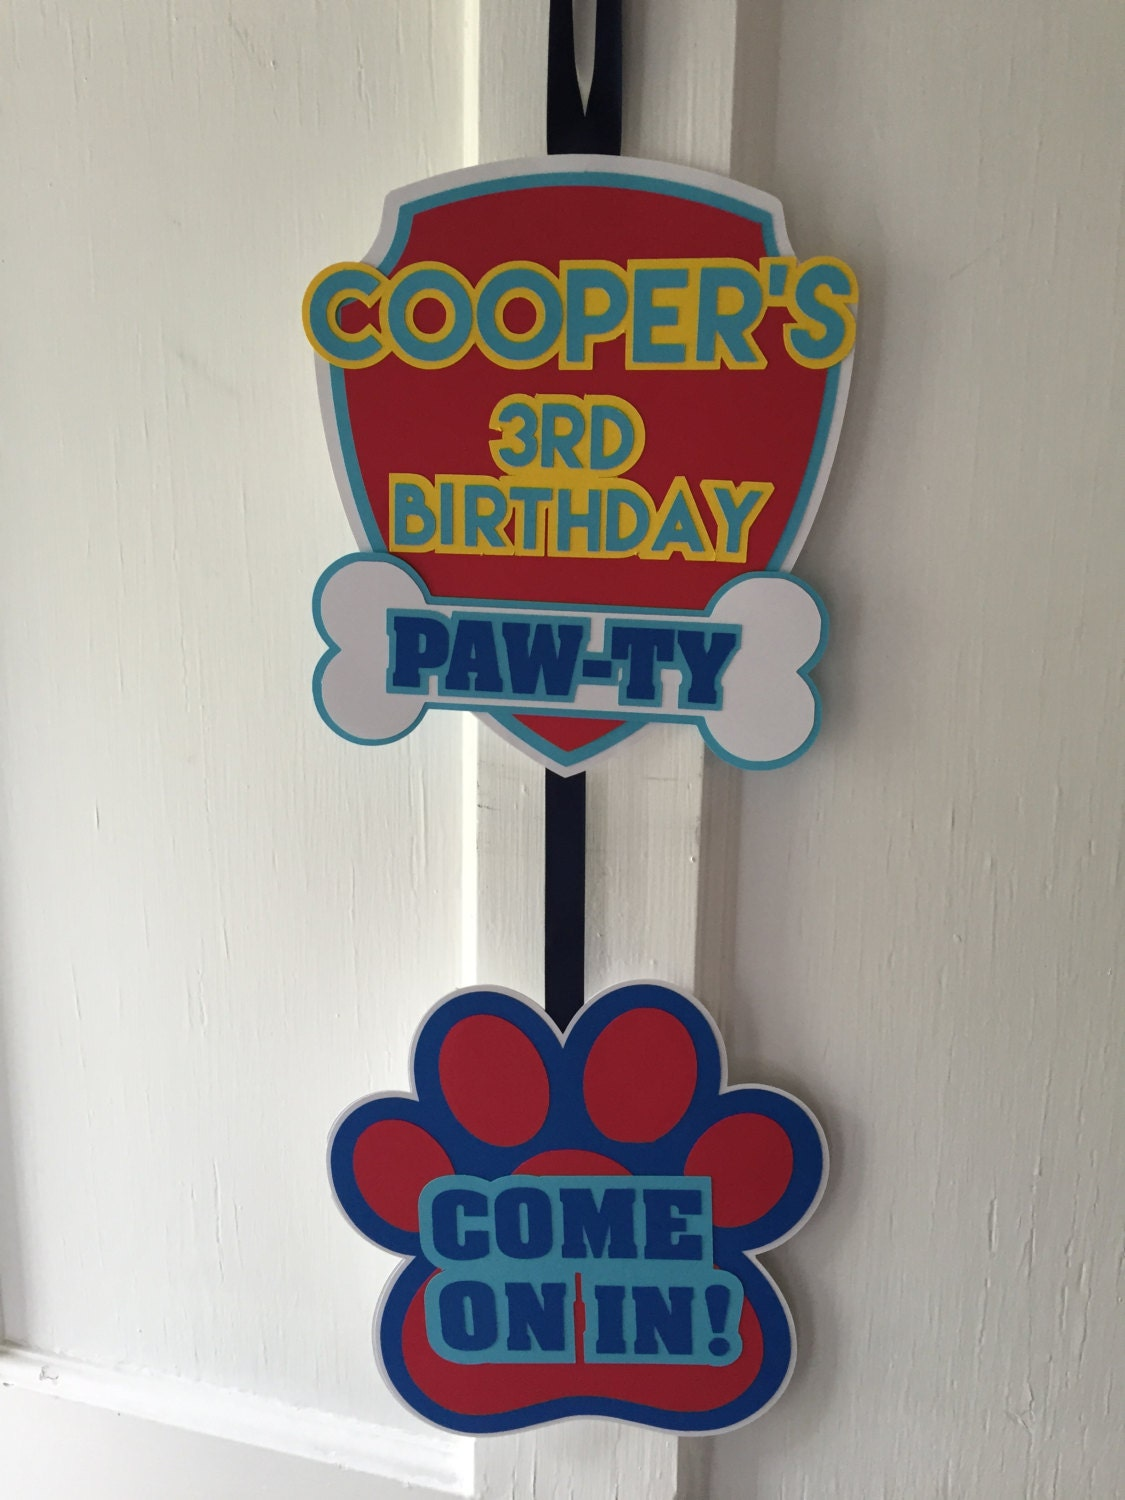 Paw Patrol Inspired Party Door Sign. 3 December Signs Of Stroke. Road Murals. Headphones Logo. Listorganic Signs. Fairy Light Banners. Company Logo Design. Compatibility Signs. Car Japanese Culture Stickers